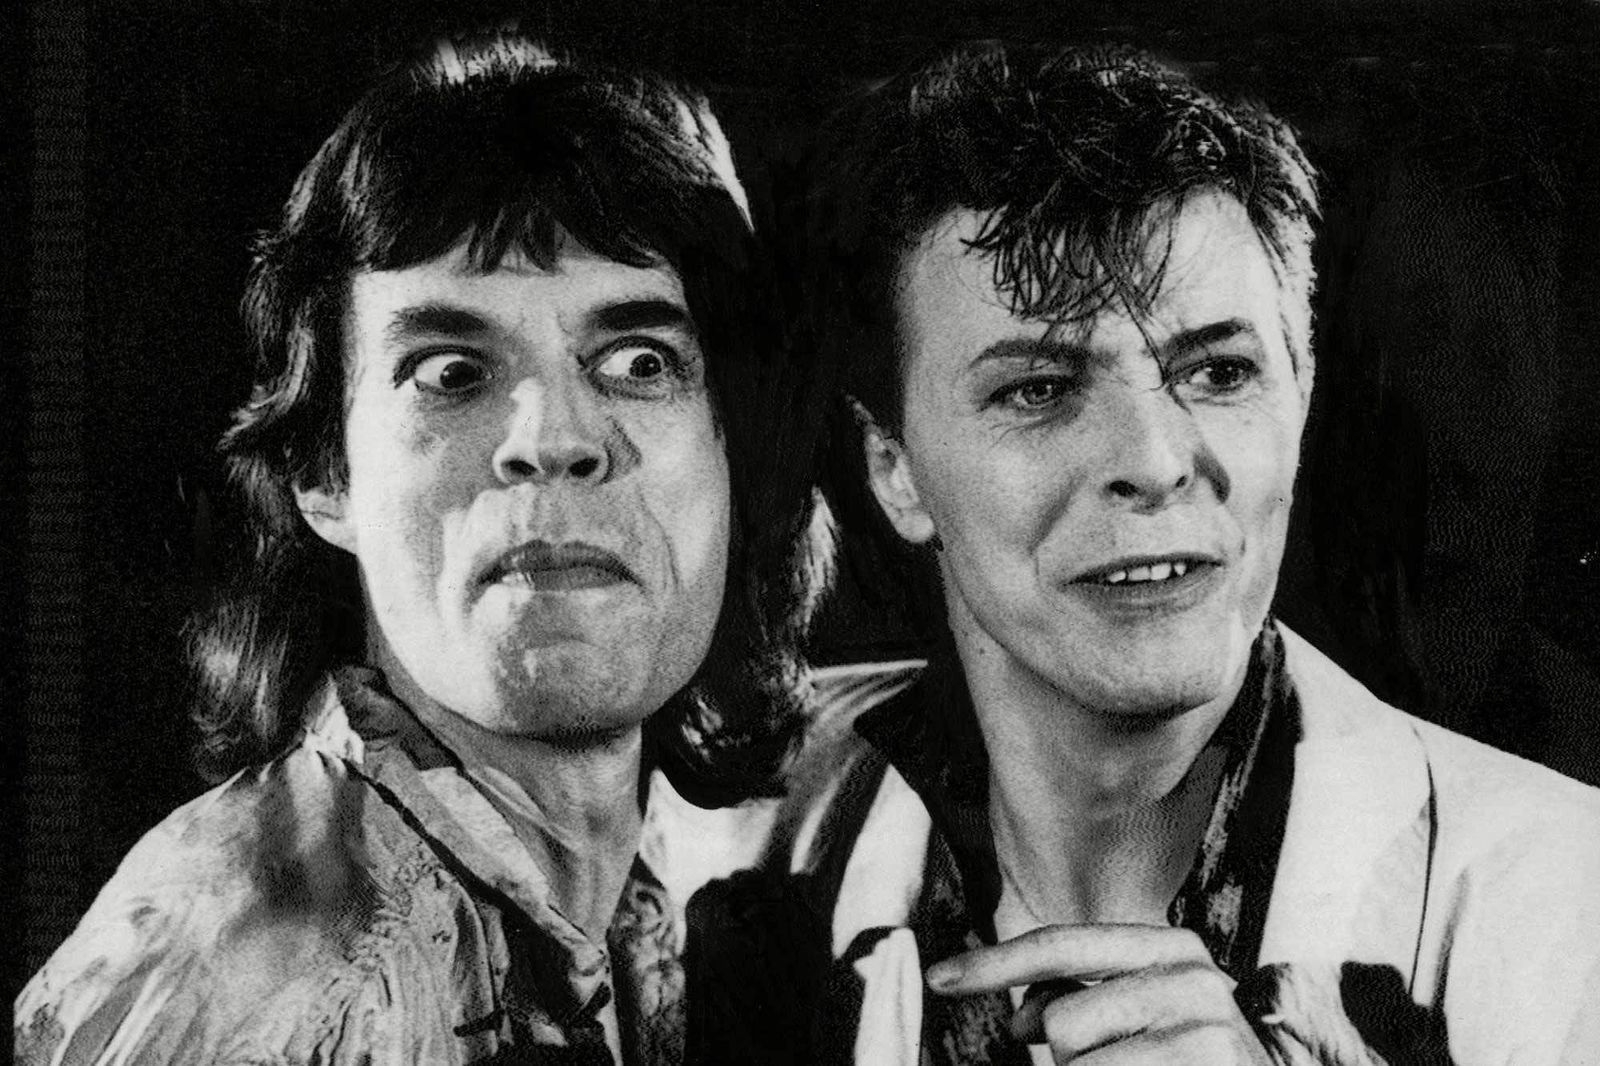 Mick Jagger and David Bowie in the nineteen eighties - News Ltd Newspix/REX/SIPA